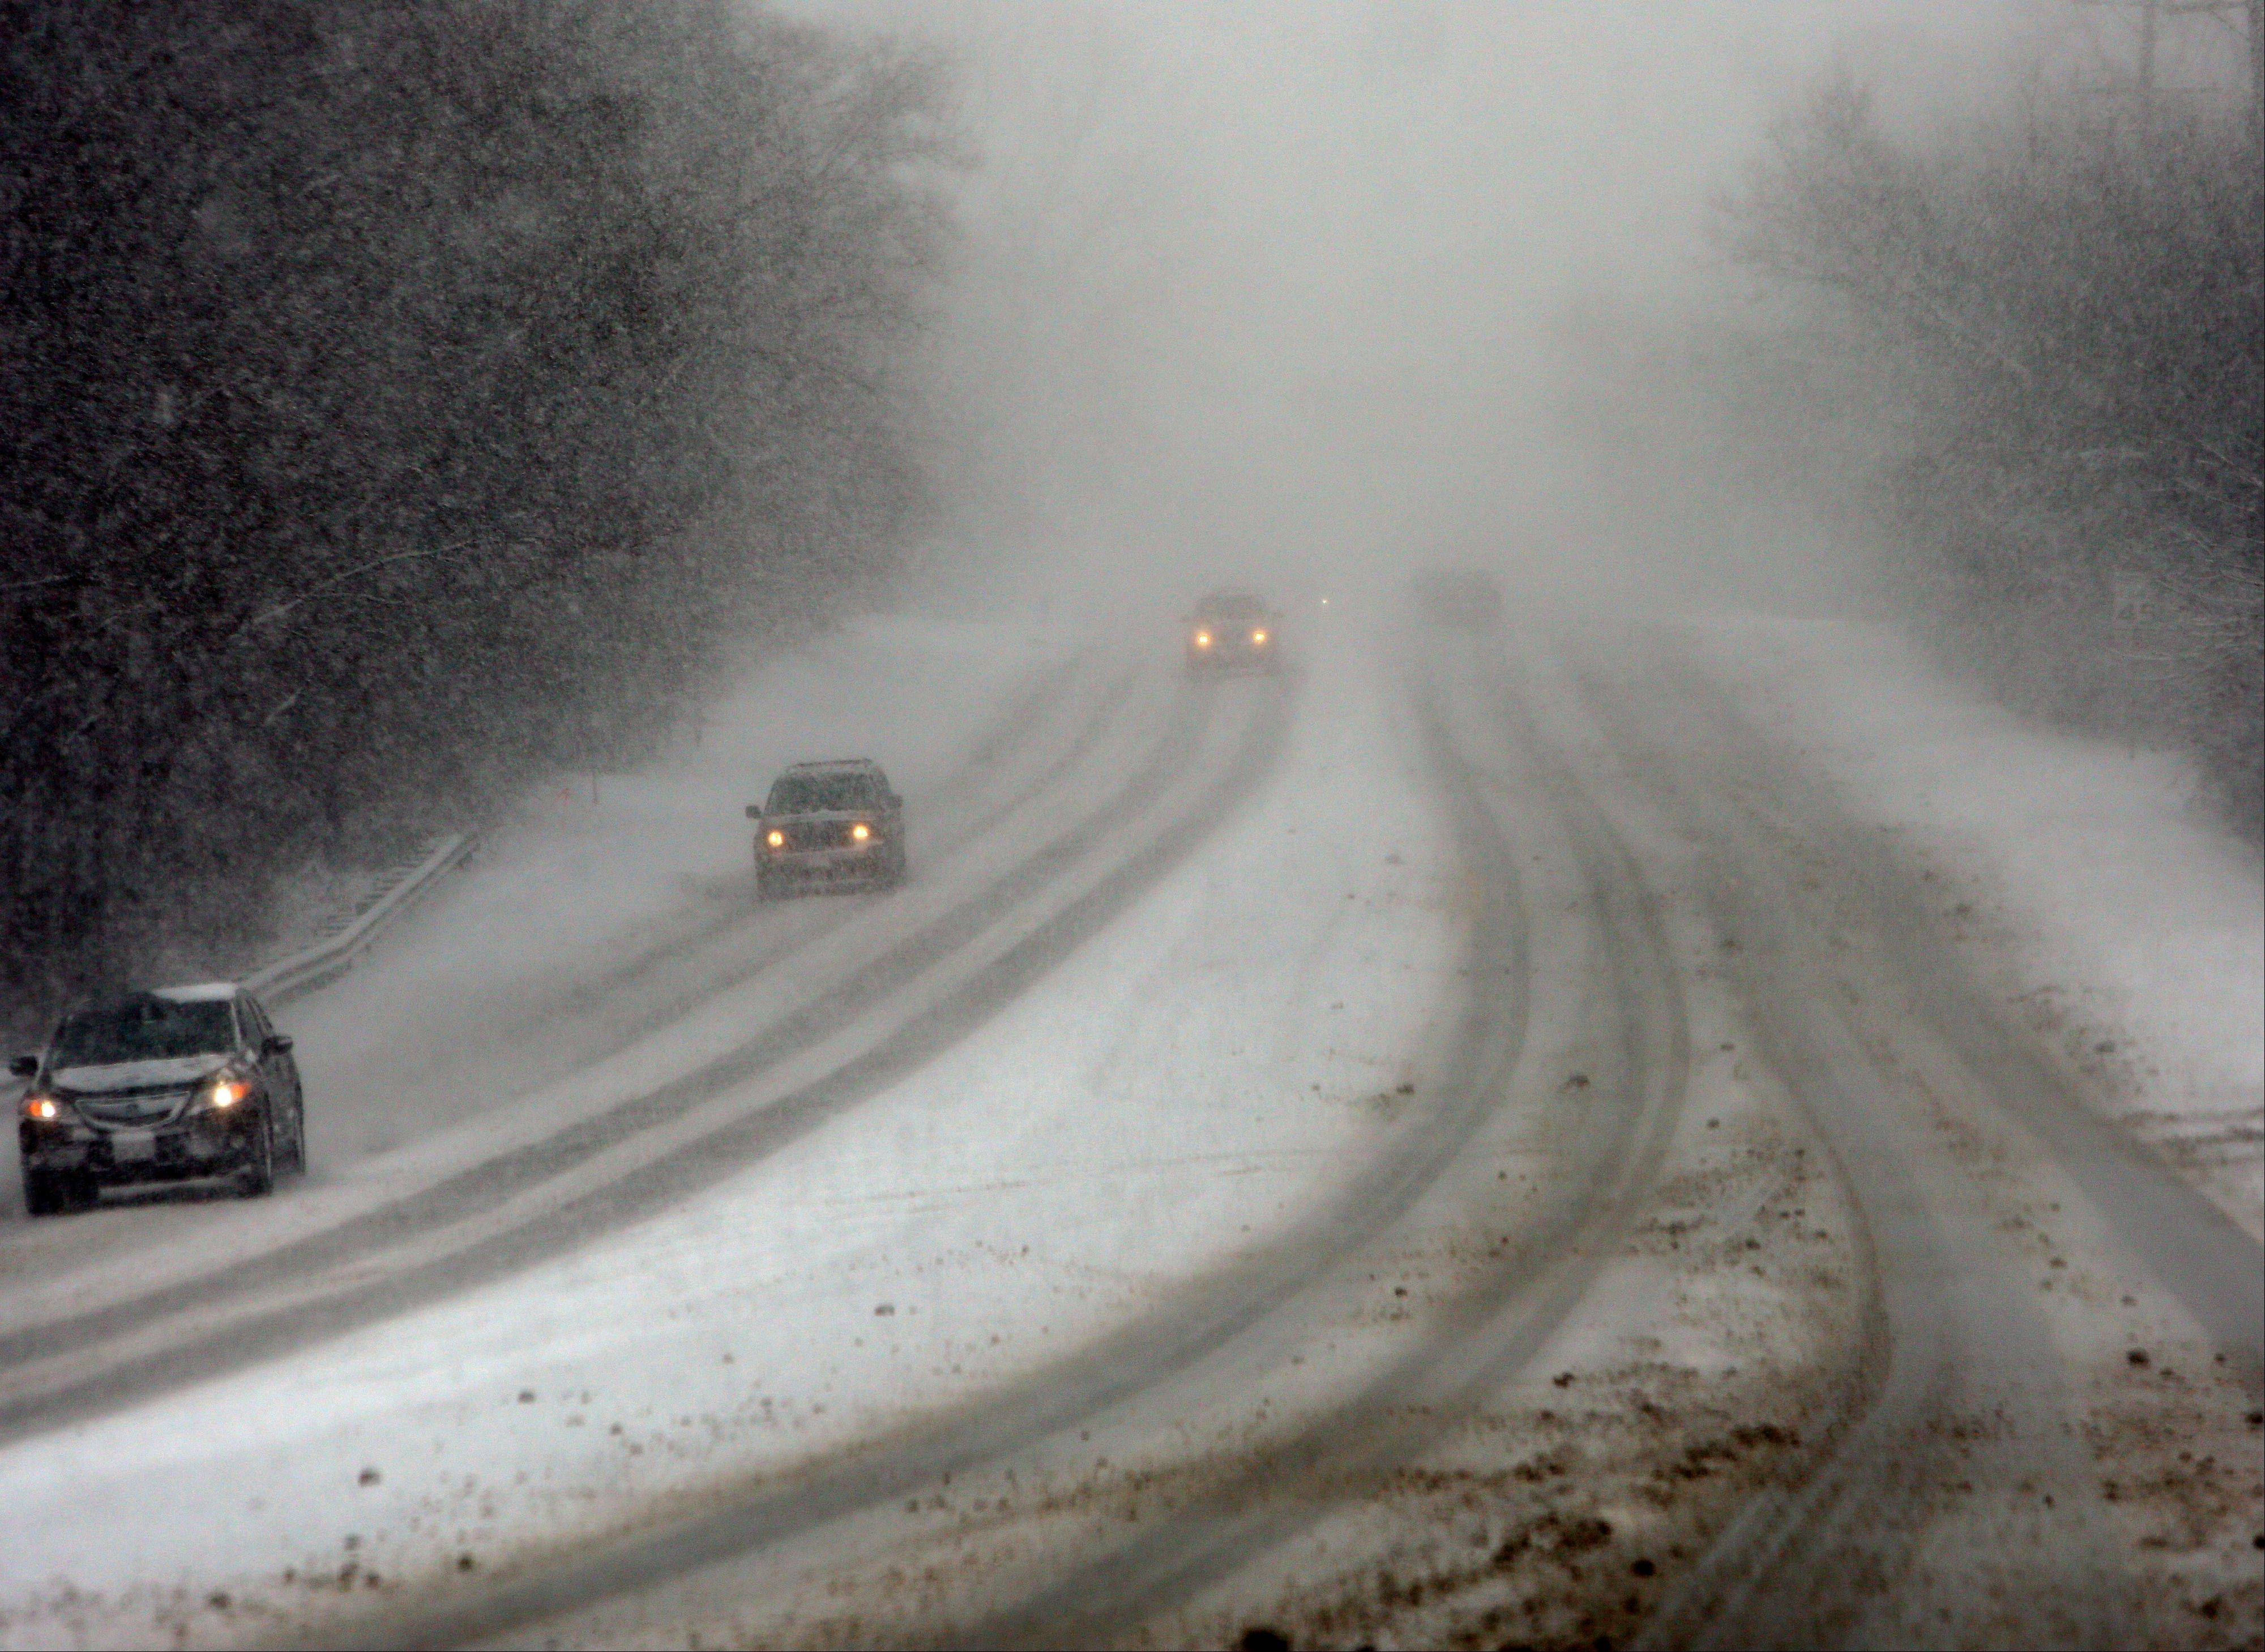 Road conditions were hazardous and visibility low along Warrenville Road in Lisle during lake effect snow on Thursday morning.